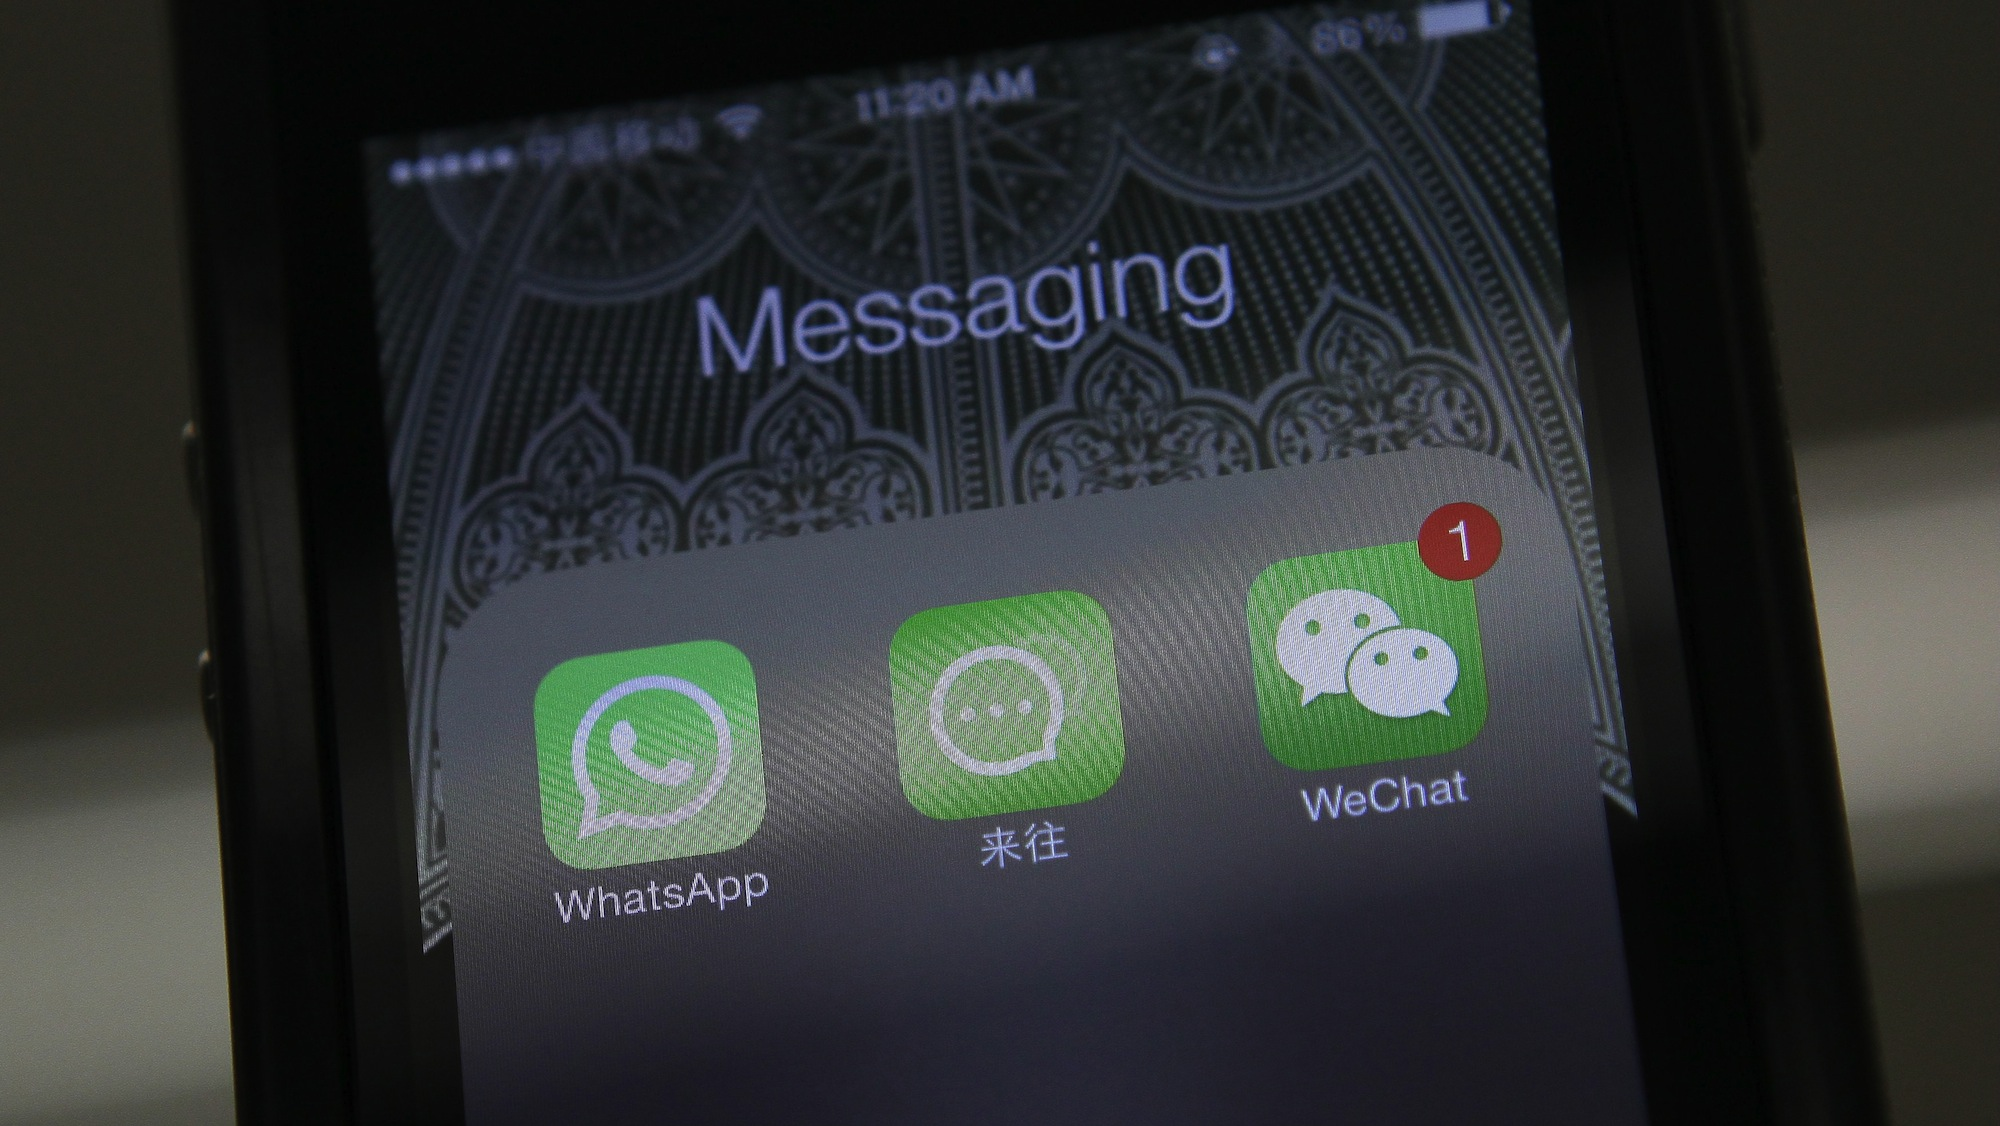 Wechat is taking on whatsapp in south africa its most dominant wechat vs whatsapp reheart Choice Image